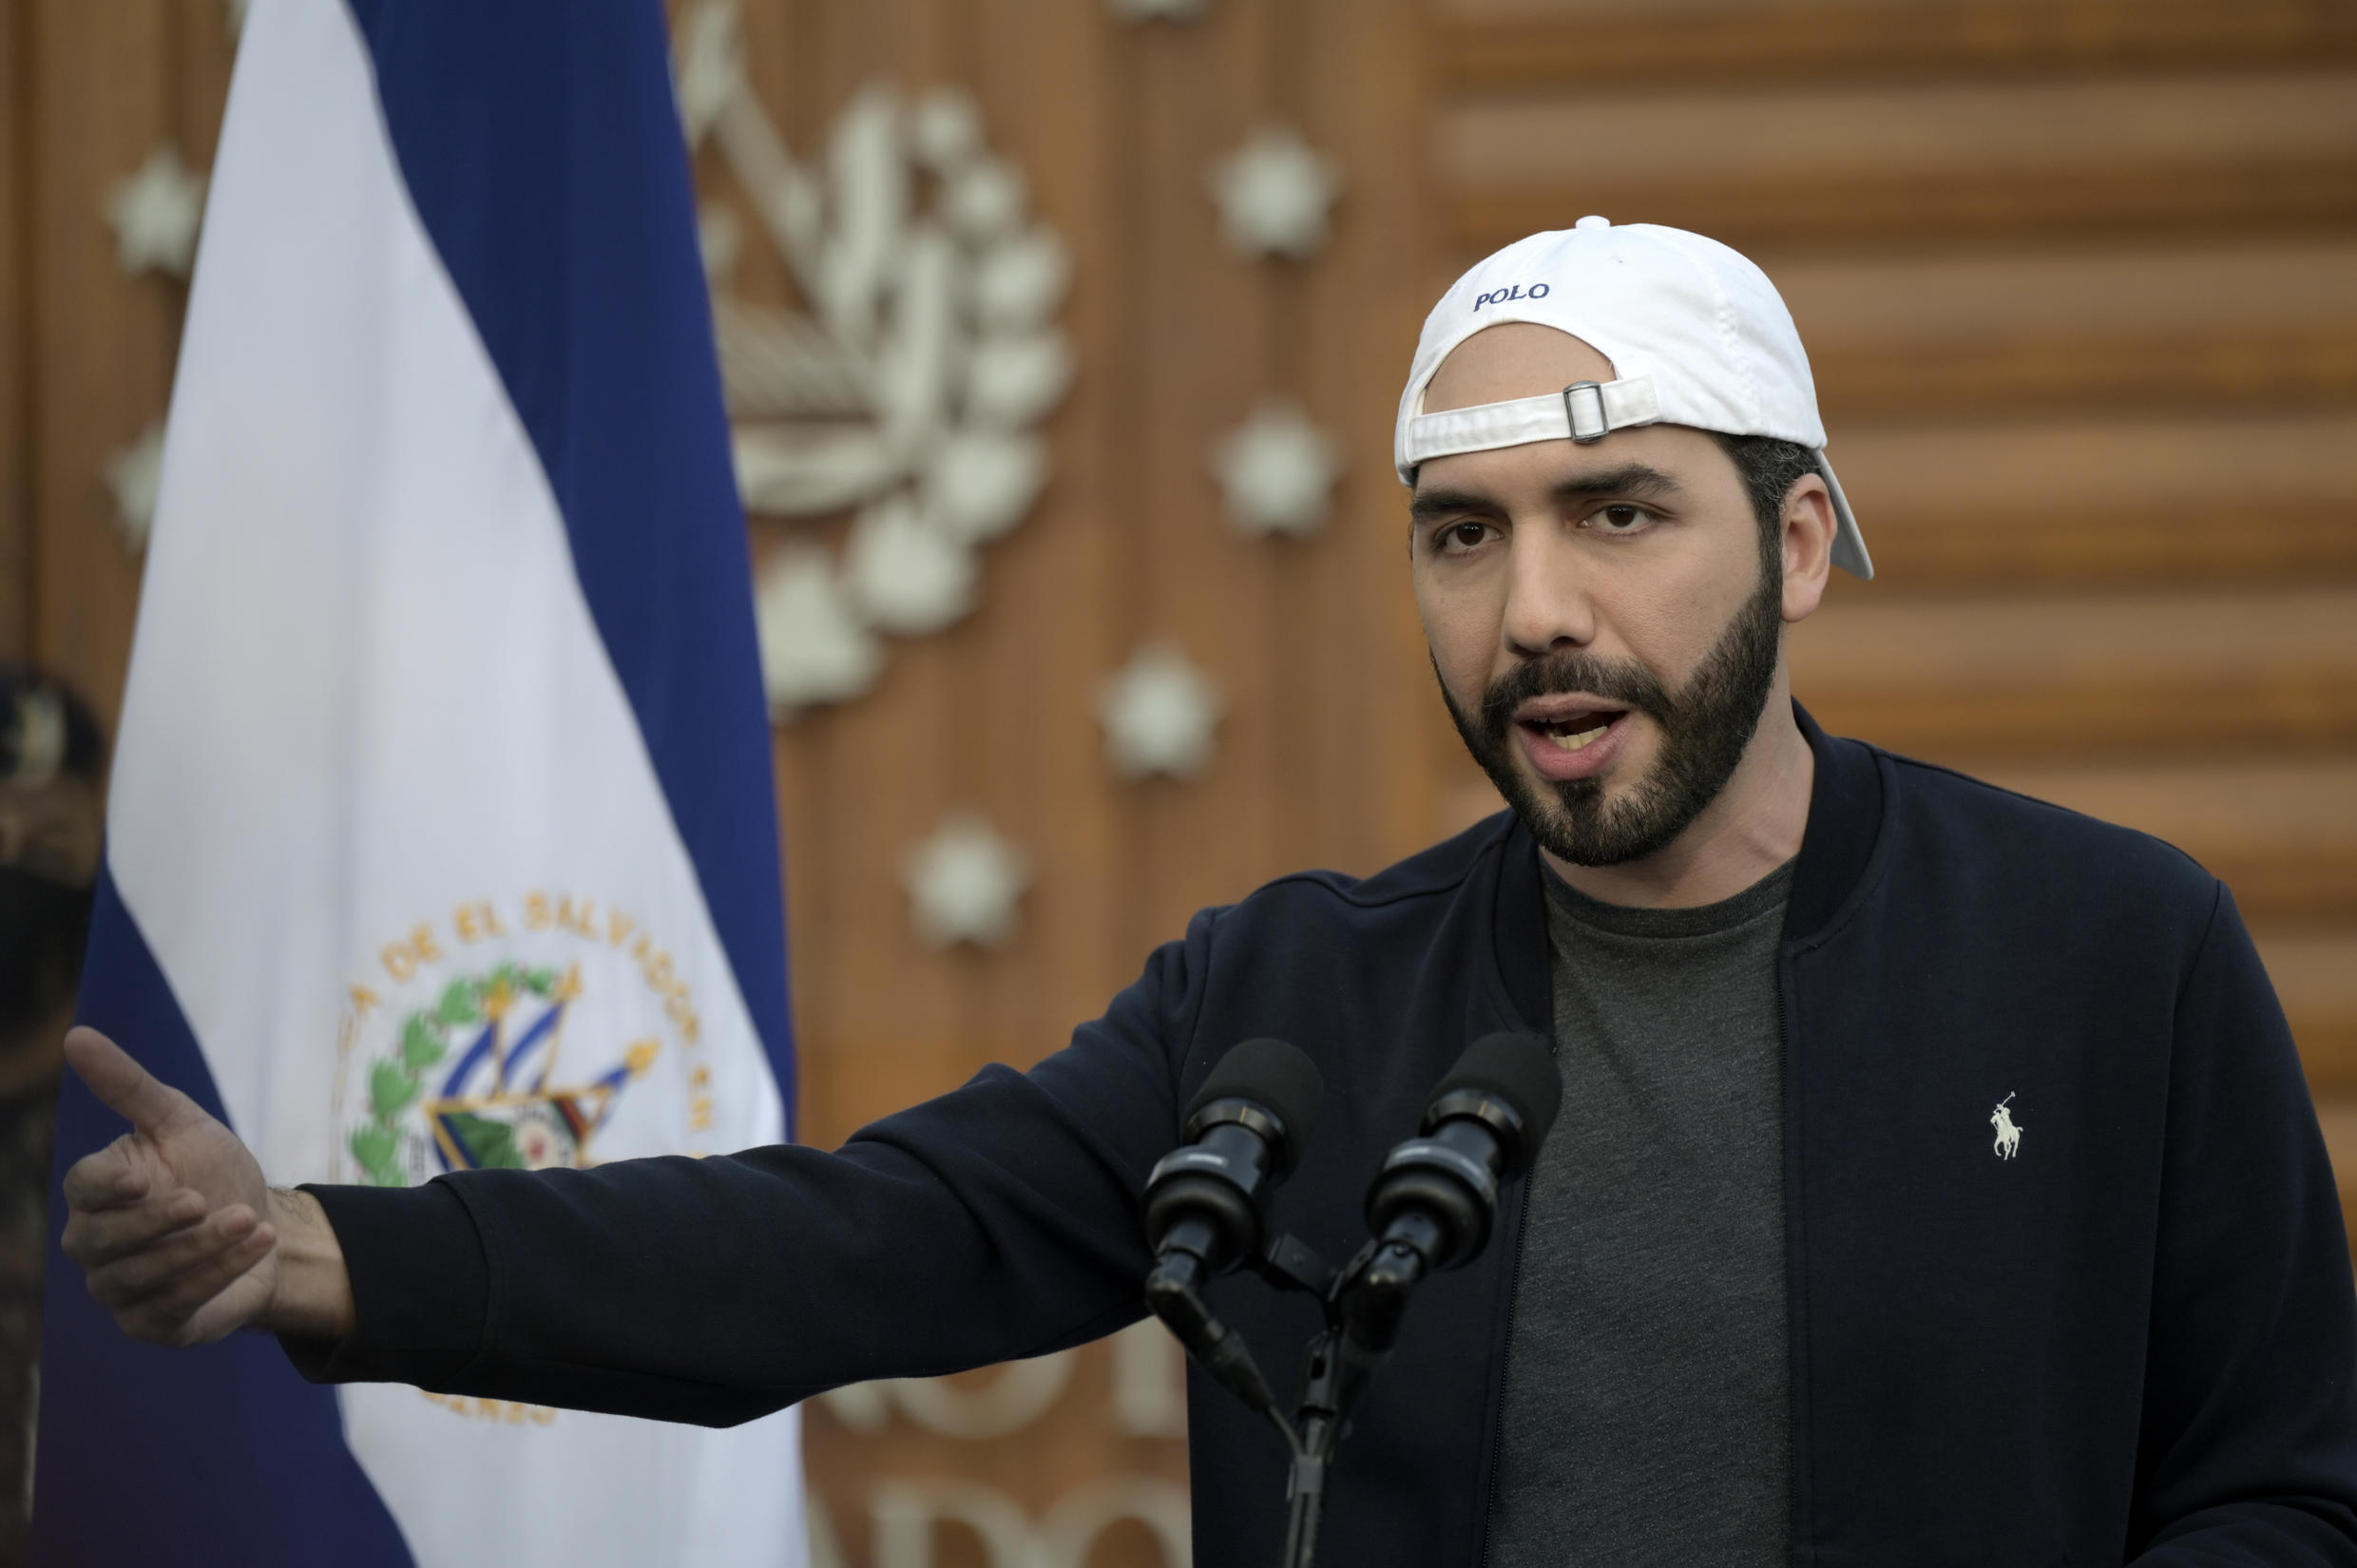 El Salvador's President Nayib Bukele, seen on February 17, 2021, uses social media to his advantage and has cultivated an image as a man of the people